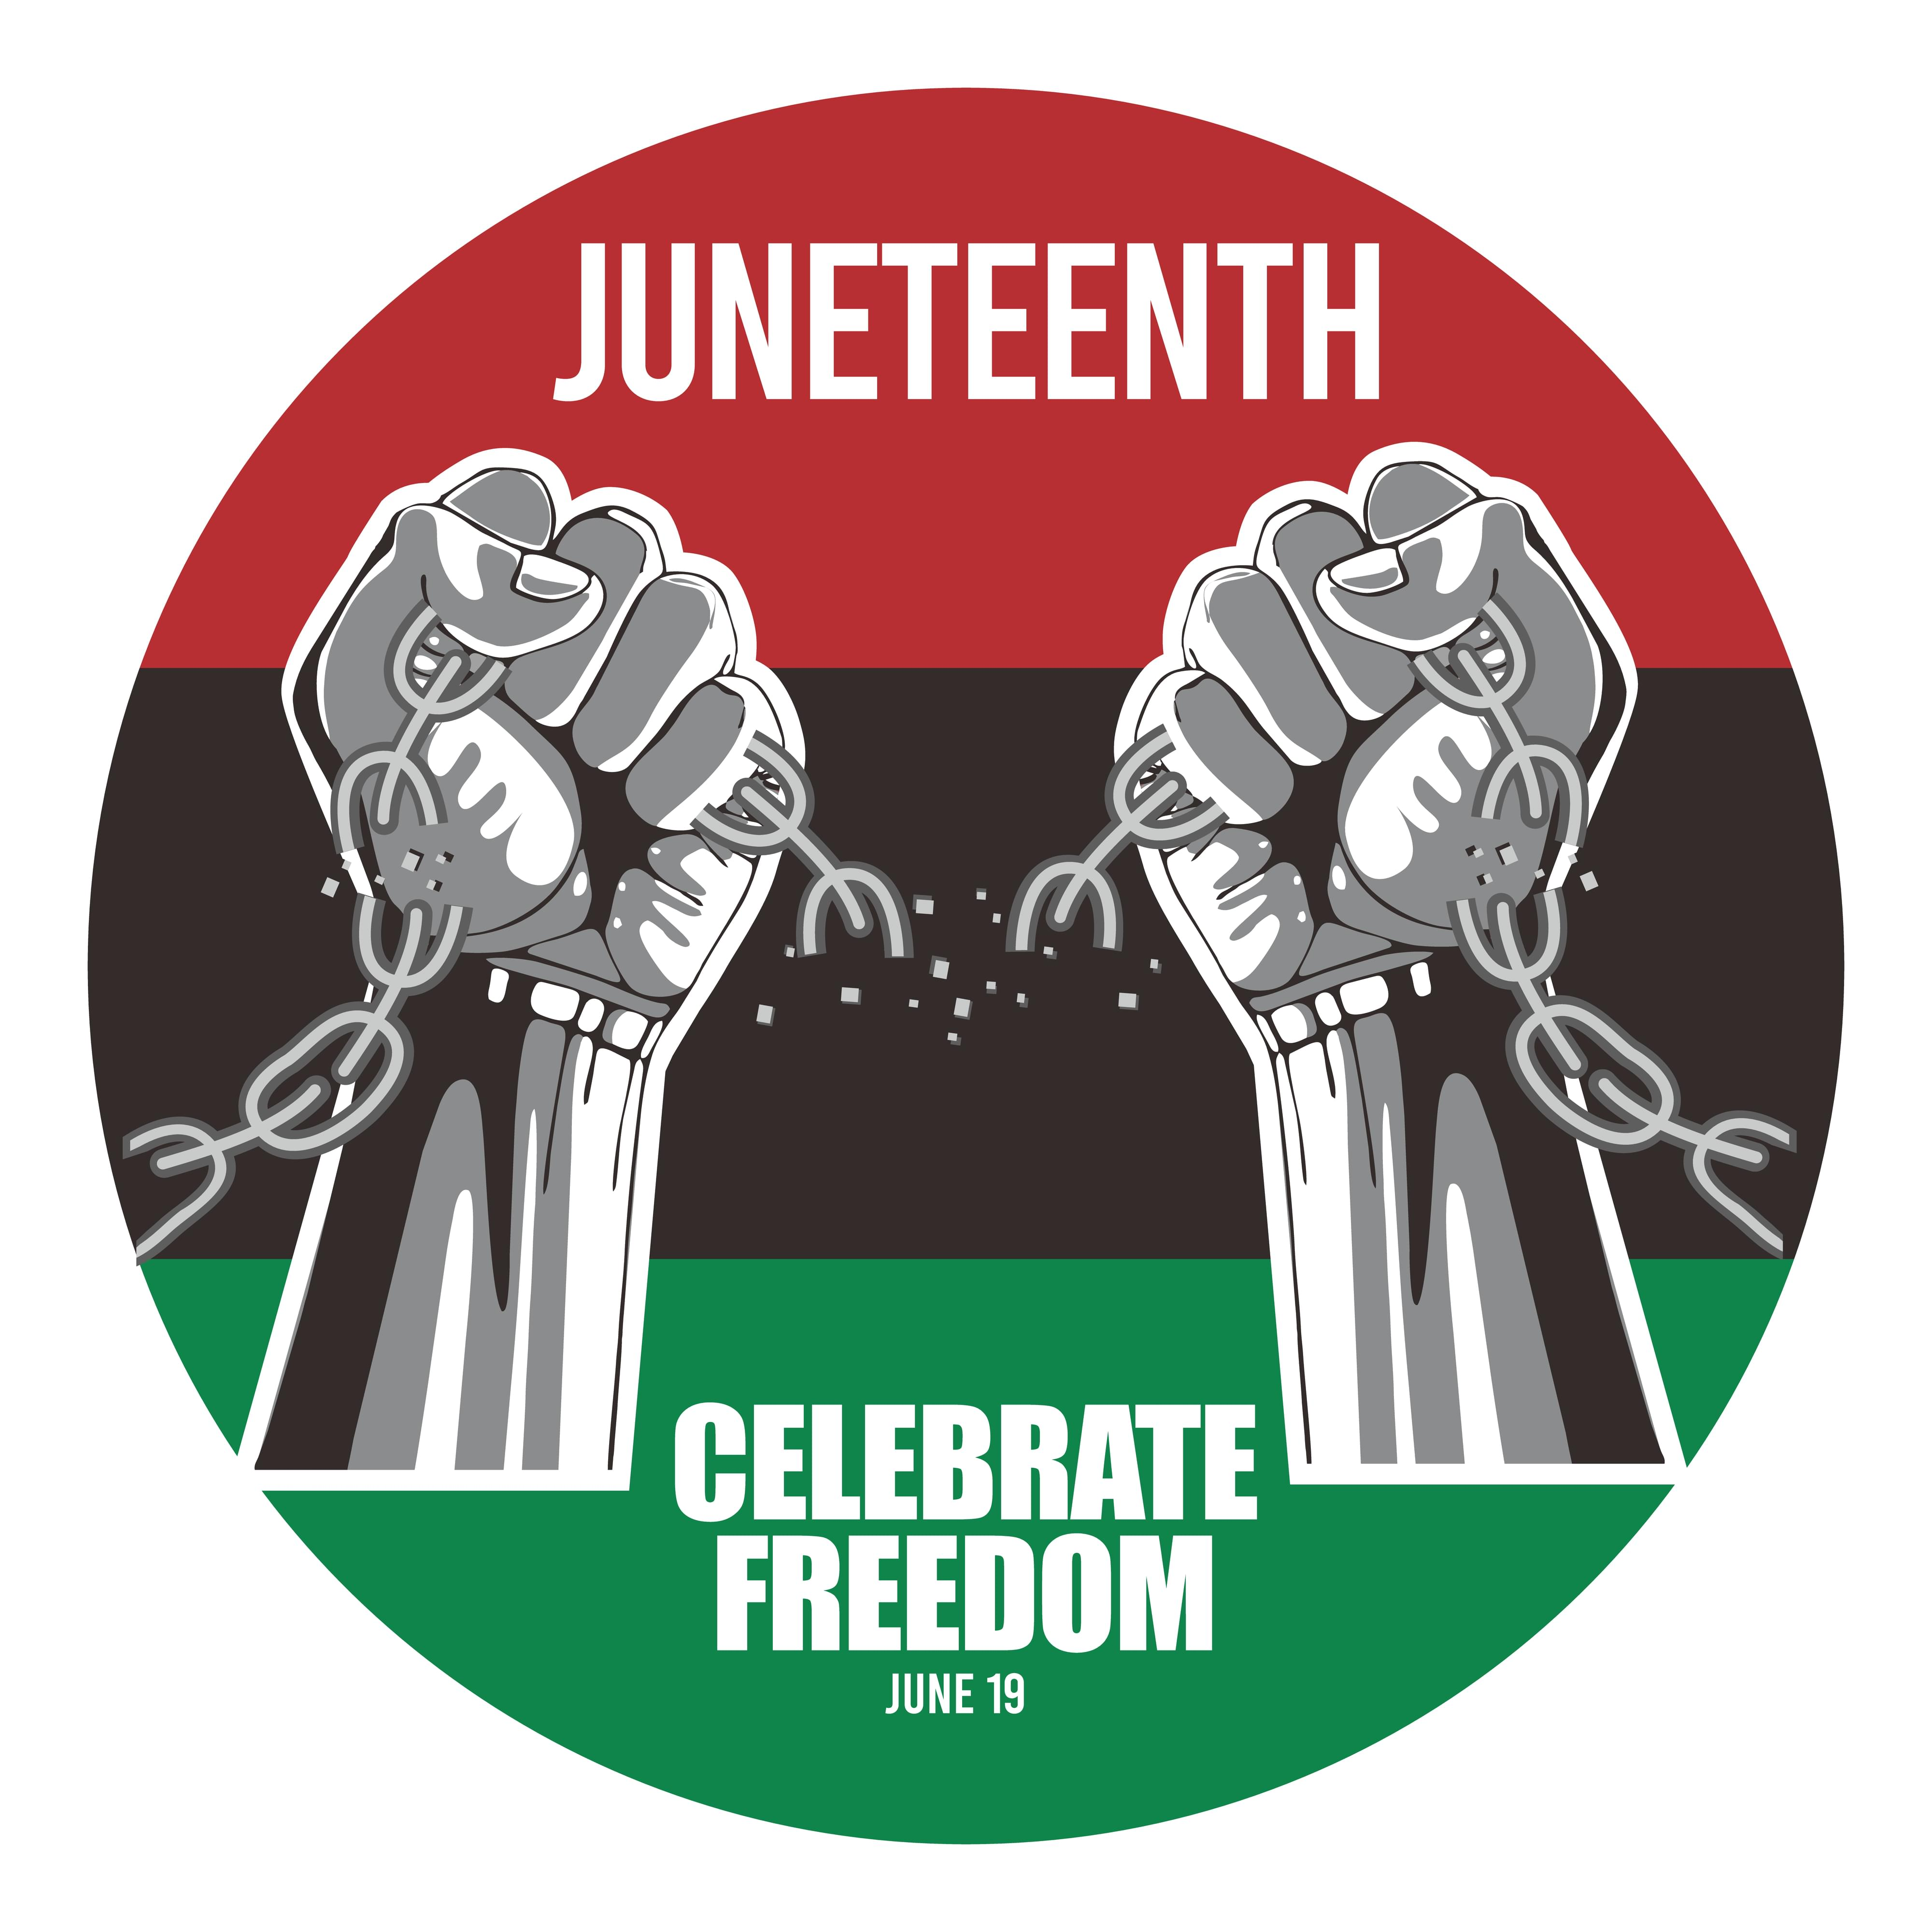 Bertie County To Make Juneteeth A Holiday in 2021